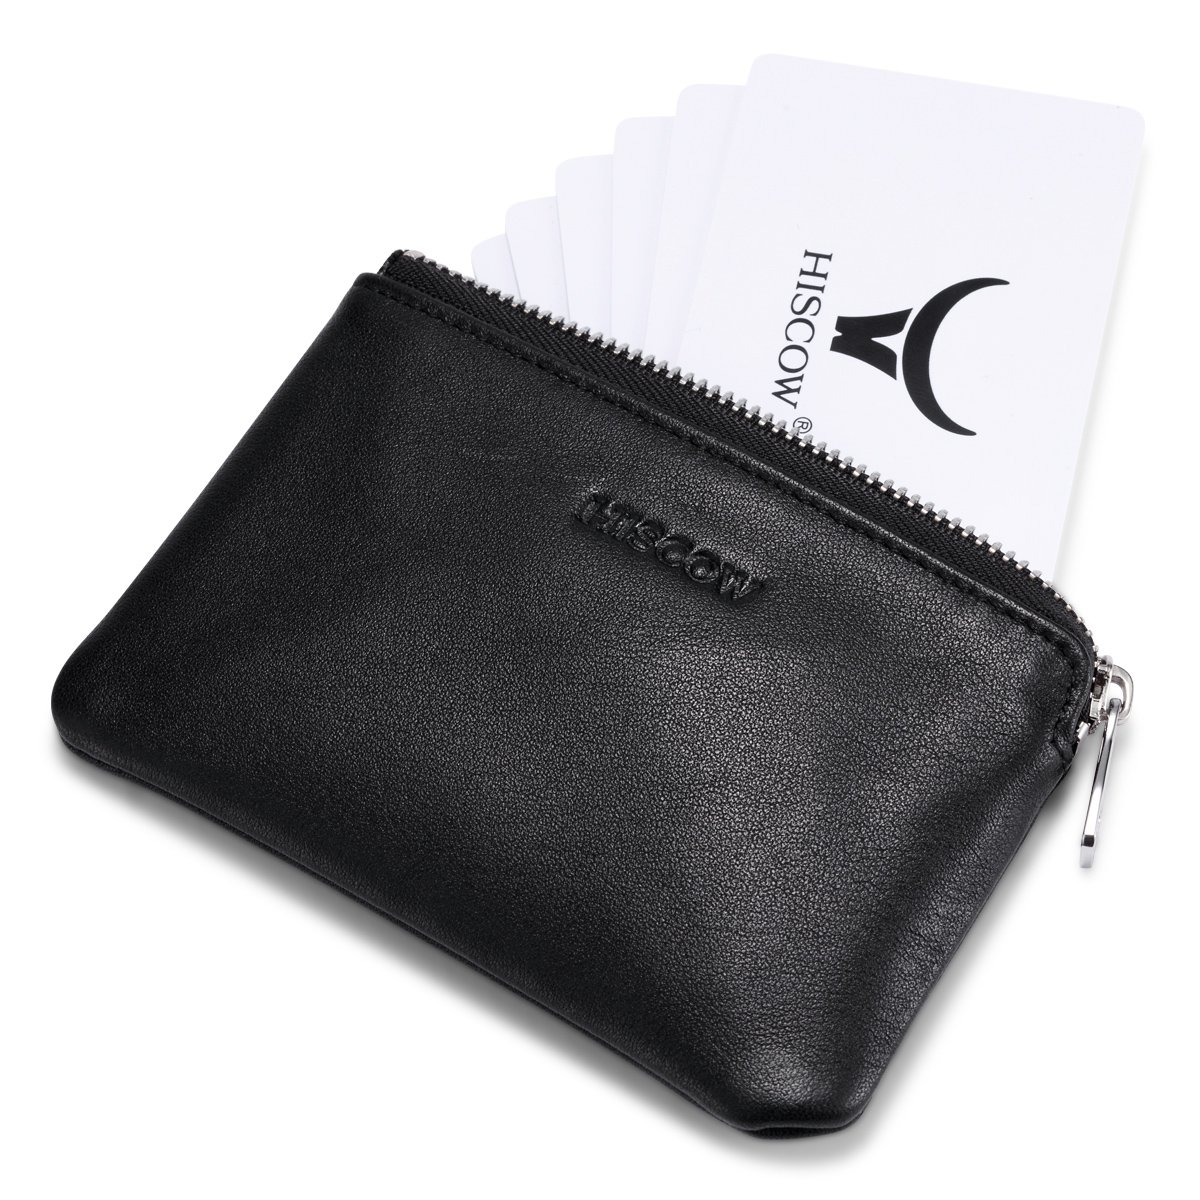 HISCOW Zipper Soft Card Pouch Black with Single Compartment - Italian Calfskin